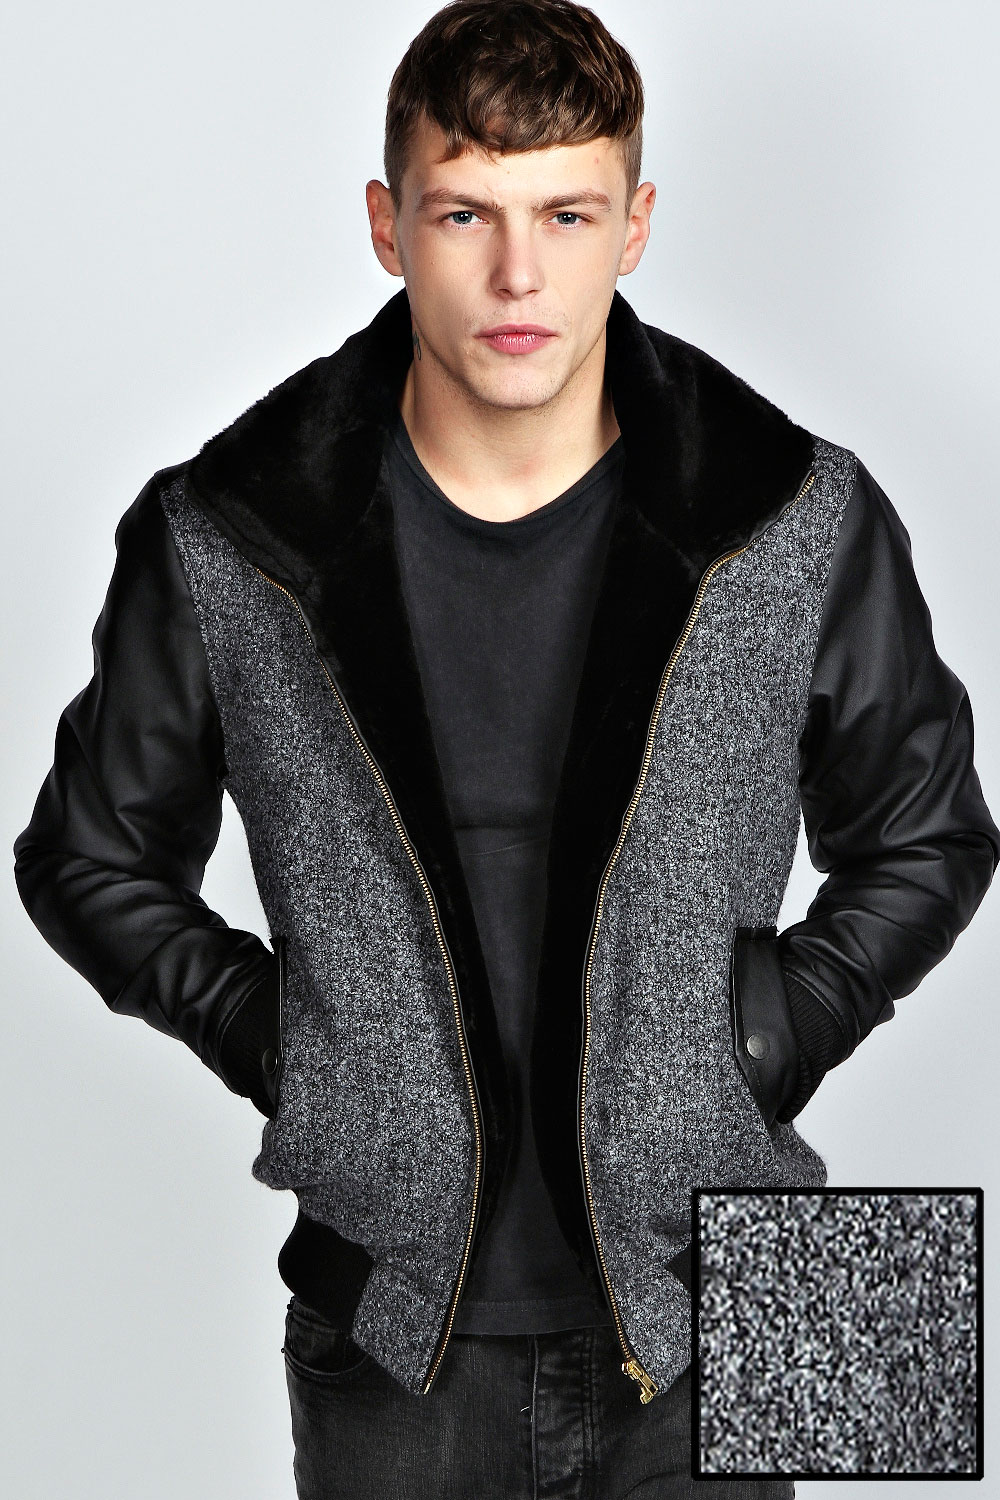 The best collection of mens chinchilla fur jackets, Men's mink bomber jackets, Men's fox fur jacket and some Men's shearlings Looking for Mens fur coats or Mens fur jackets, this is the place to be. Why Shop Anywhere Else?